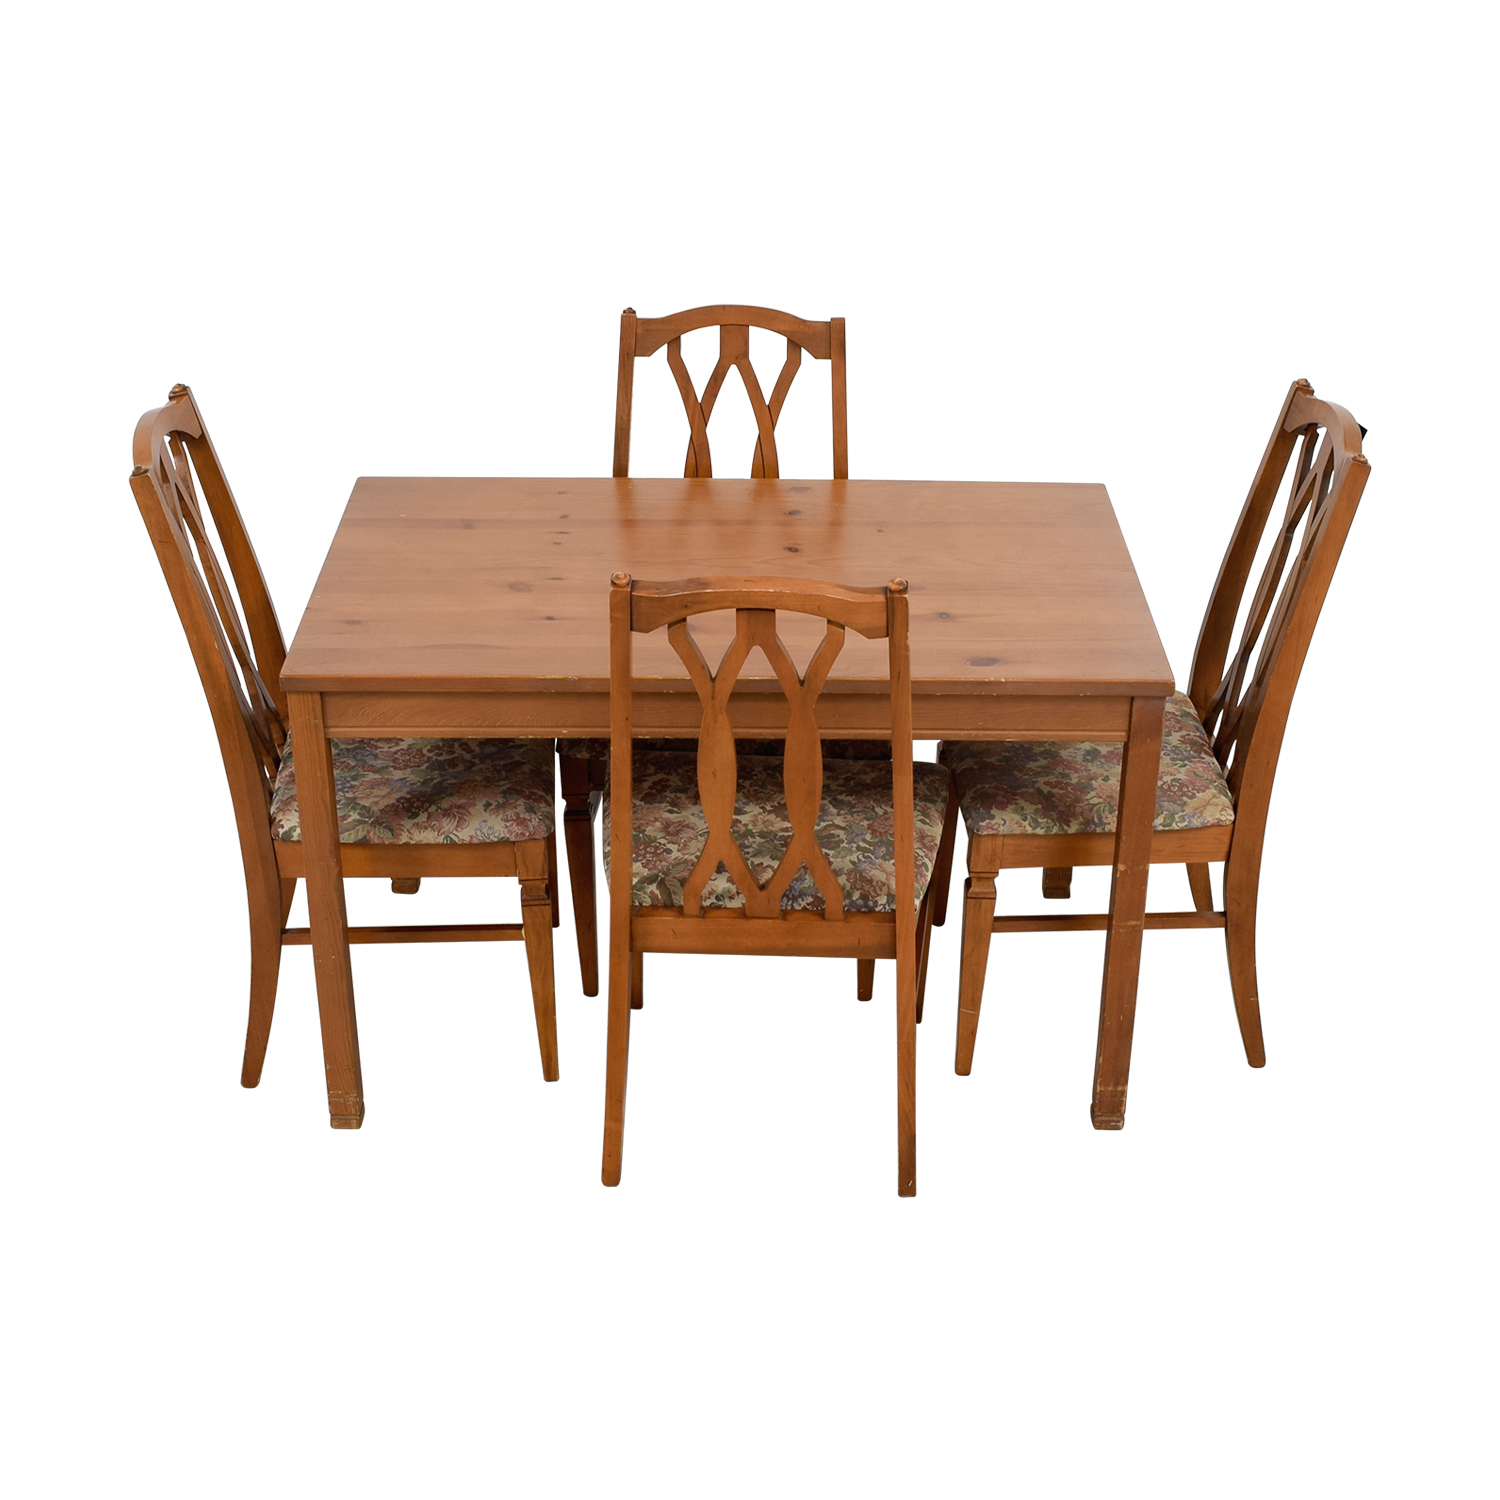 used kitchen chairs ethan allen windsor dining sets for sale